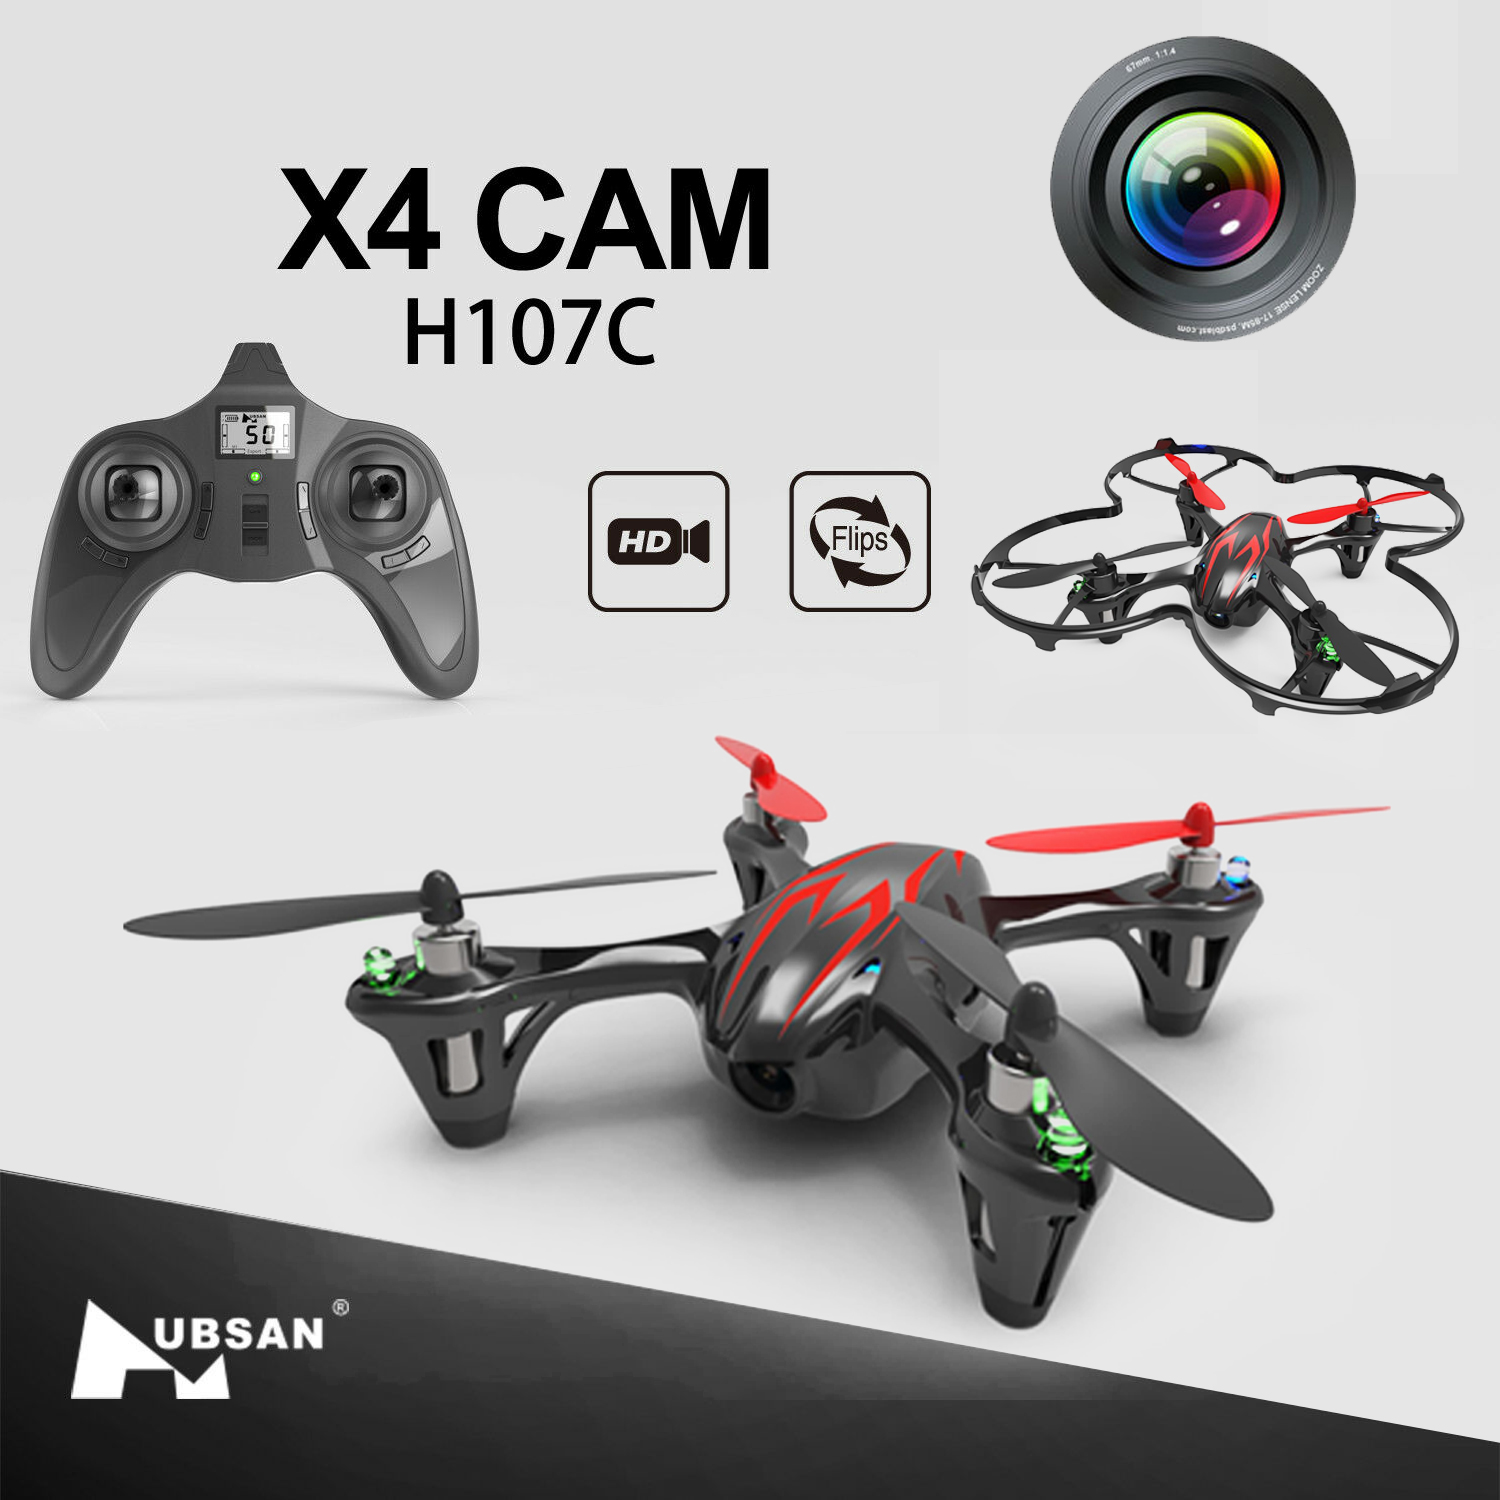 New Hubsan X4 H107C RC Drone Quadcopter With Video Recorder HD 720P Best Gift